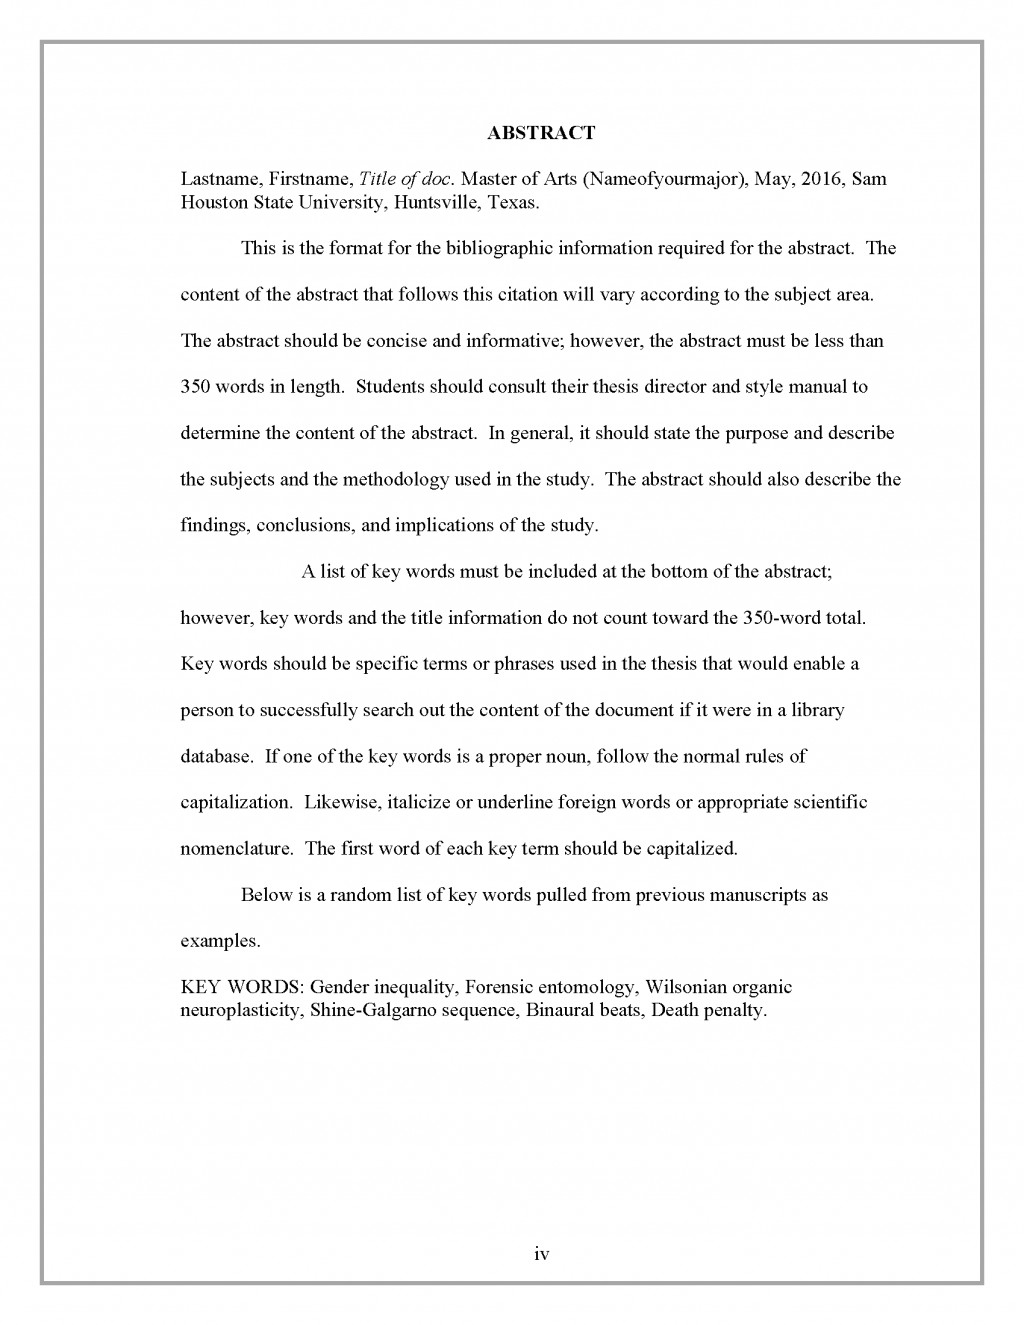 001 Business Abstract Example Border Research Wonderful Plan Proposal Large